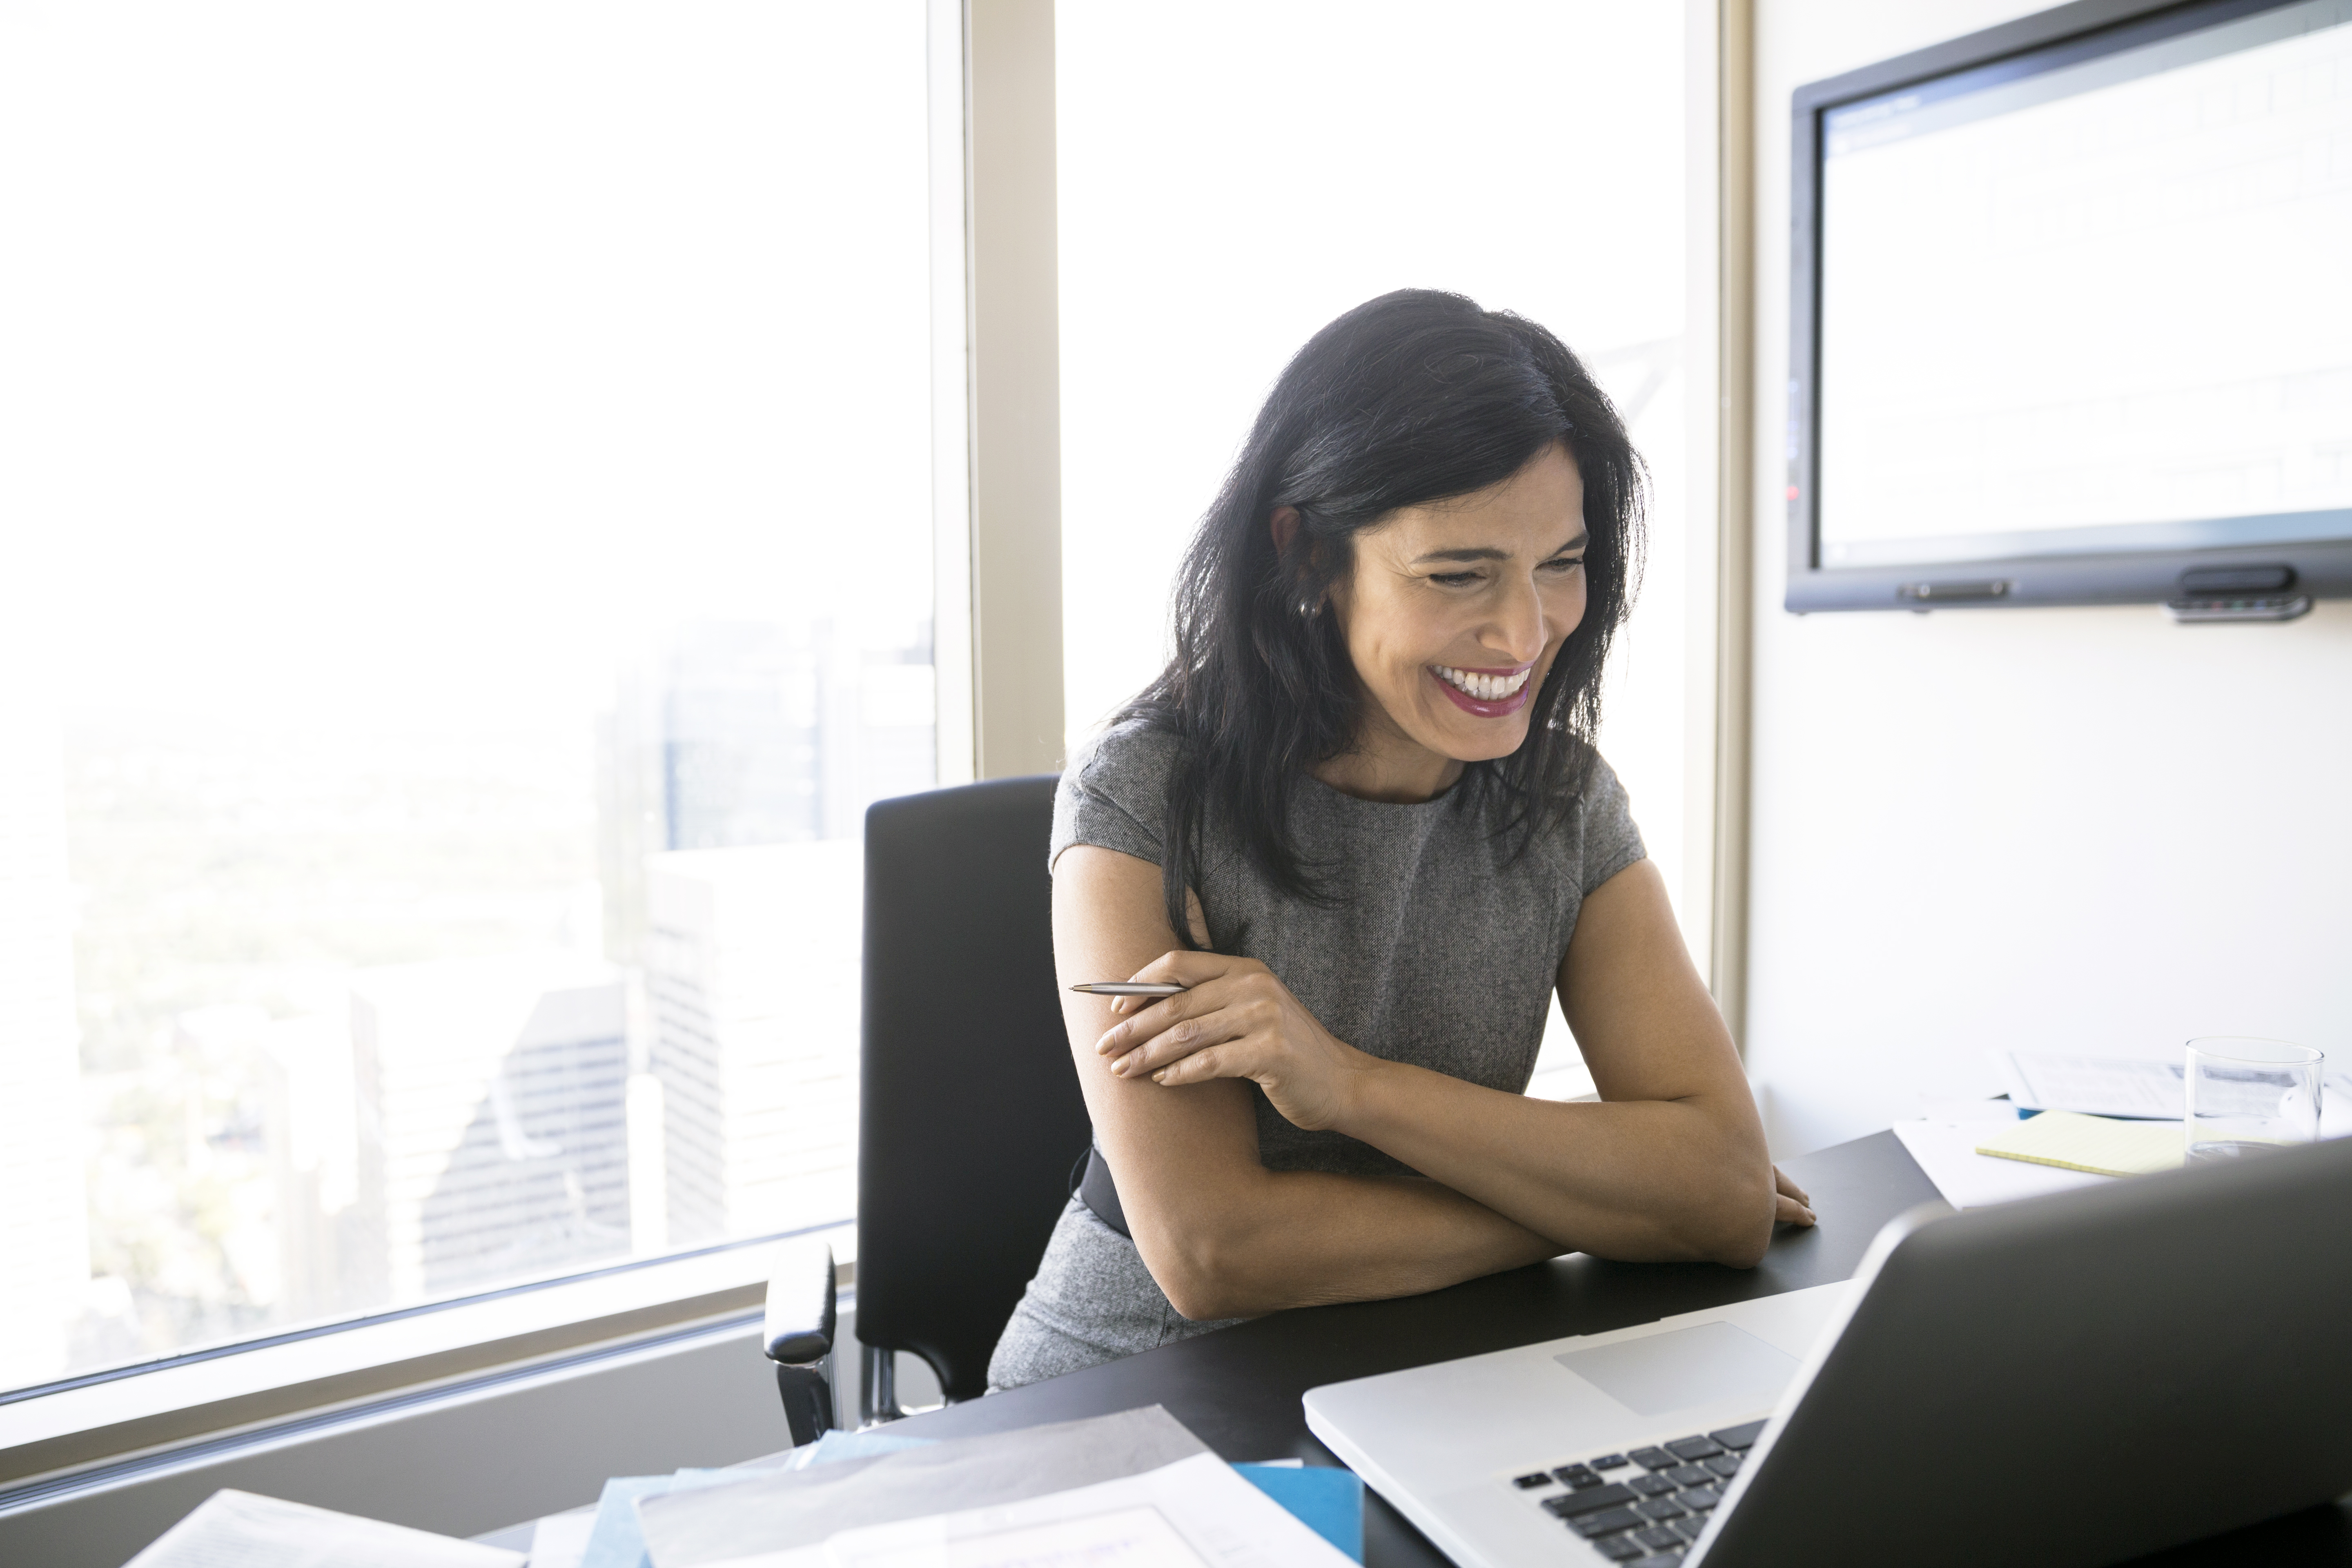 Smiling woman video conferencing at laptop in conference room